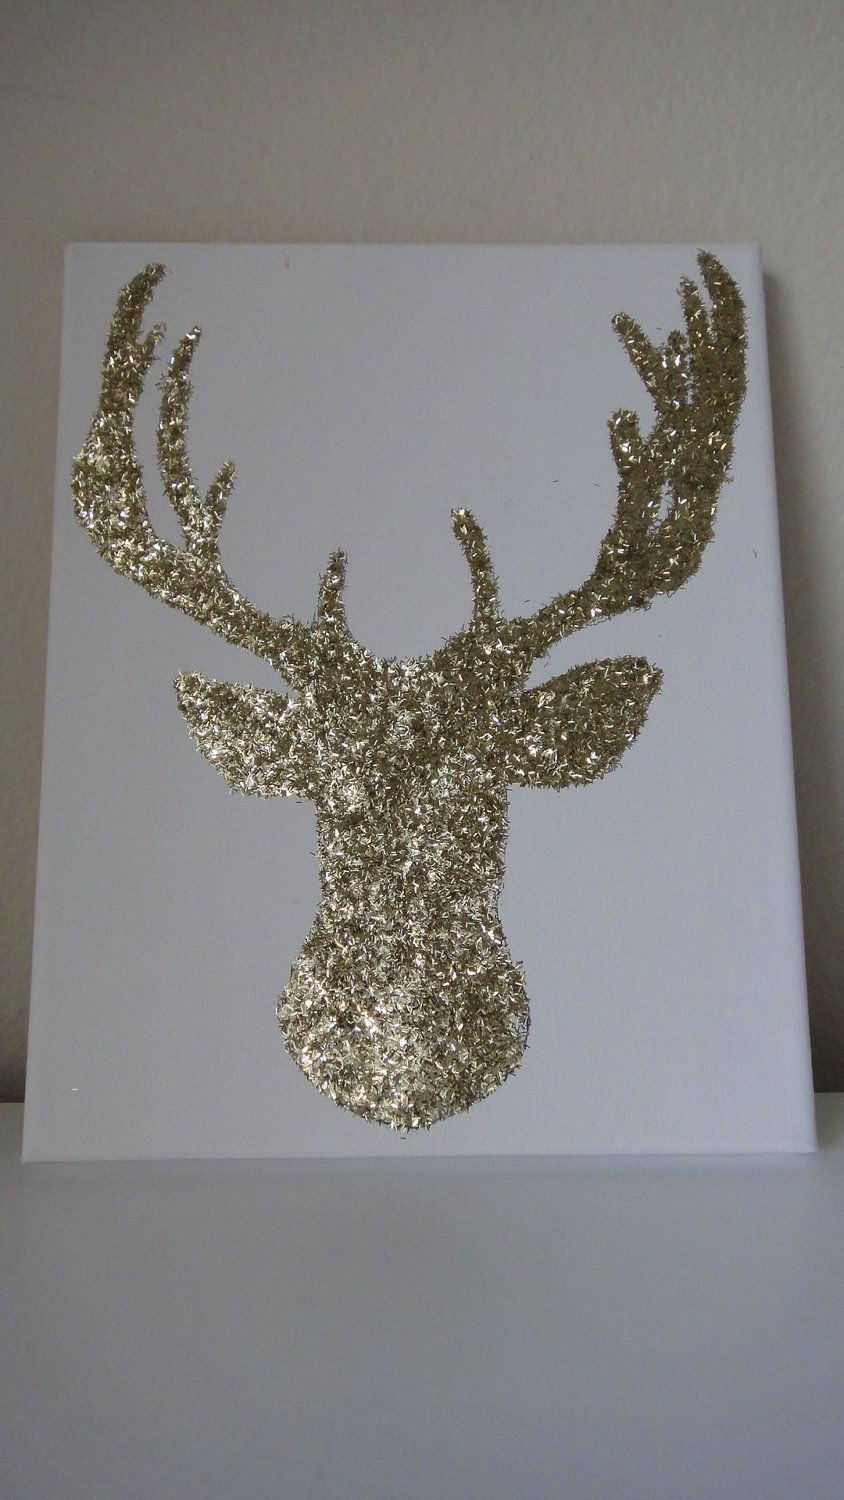 Glitter Wall Art 8x10 gold glitter reindeer deer canvas wall art | gold glitter